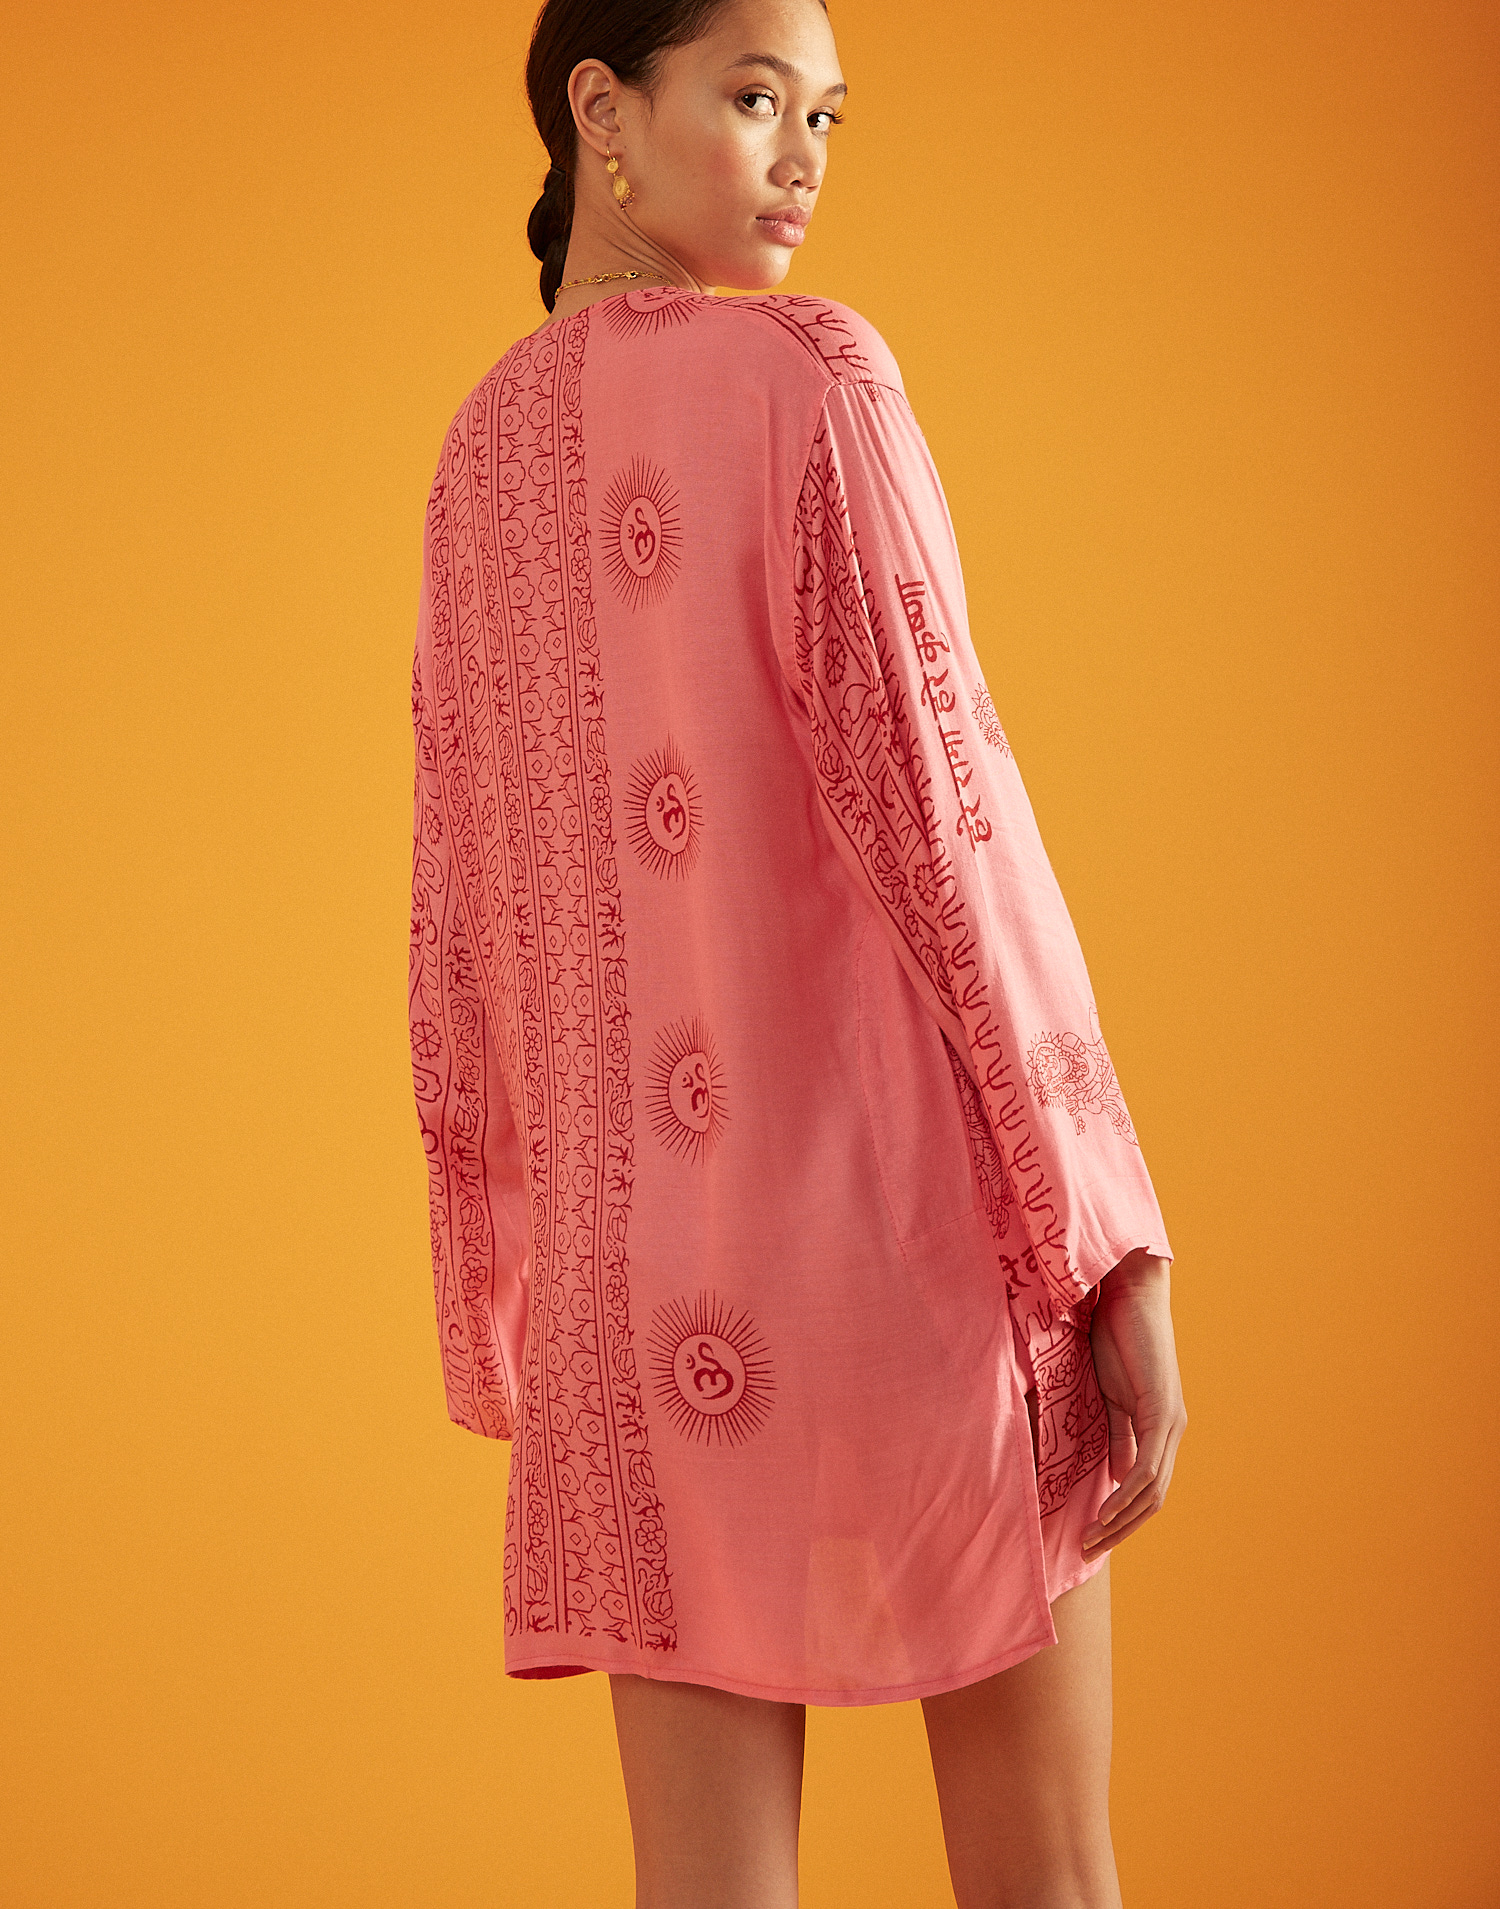 Sanskriti tunic dress